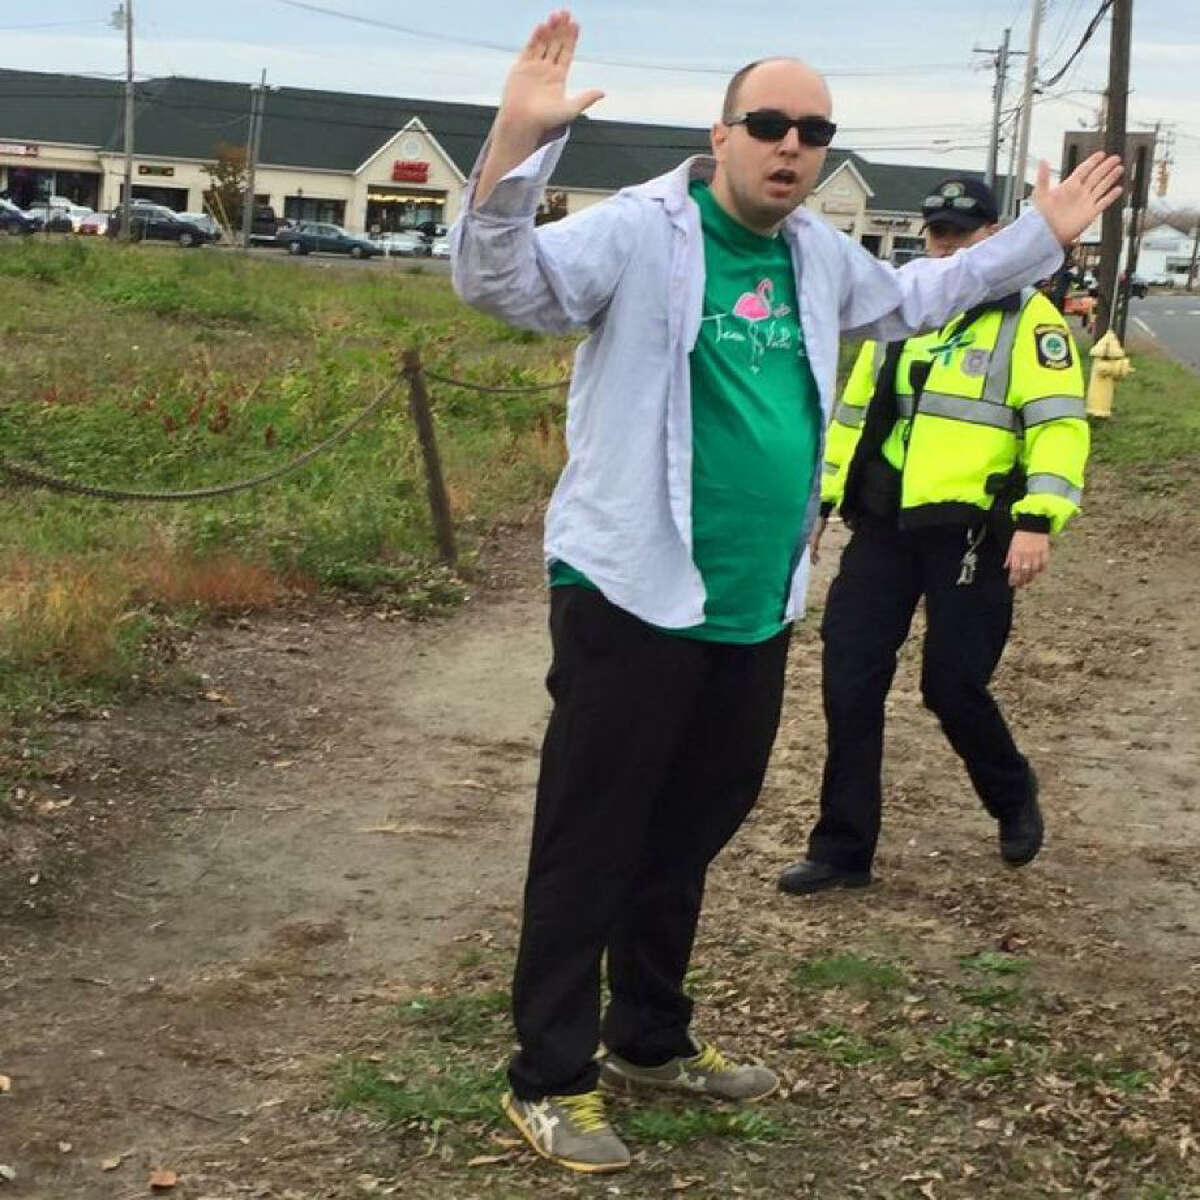 Matthew Mills, a self-proclaimed truther/journalist is charged with trying to disrupt the annual charity race in Stratford, Conn. that honors murdered Sandy Hook teacher Victoria Soto. Mills, 32, of Brooklyn, N.Y., applied for accelerated rehabilitation in Superior Court in Bridgeport, Conn. on Tuesday, Nov. 17, 2015.